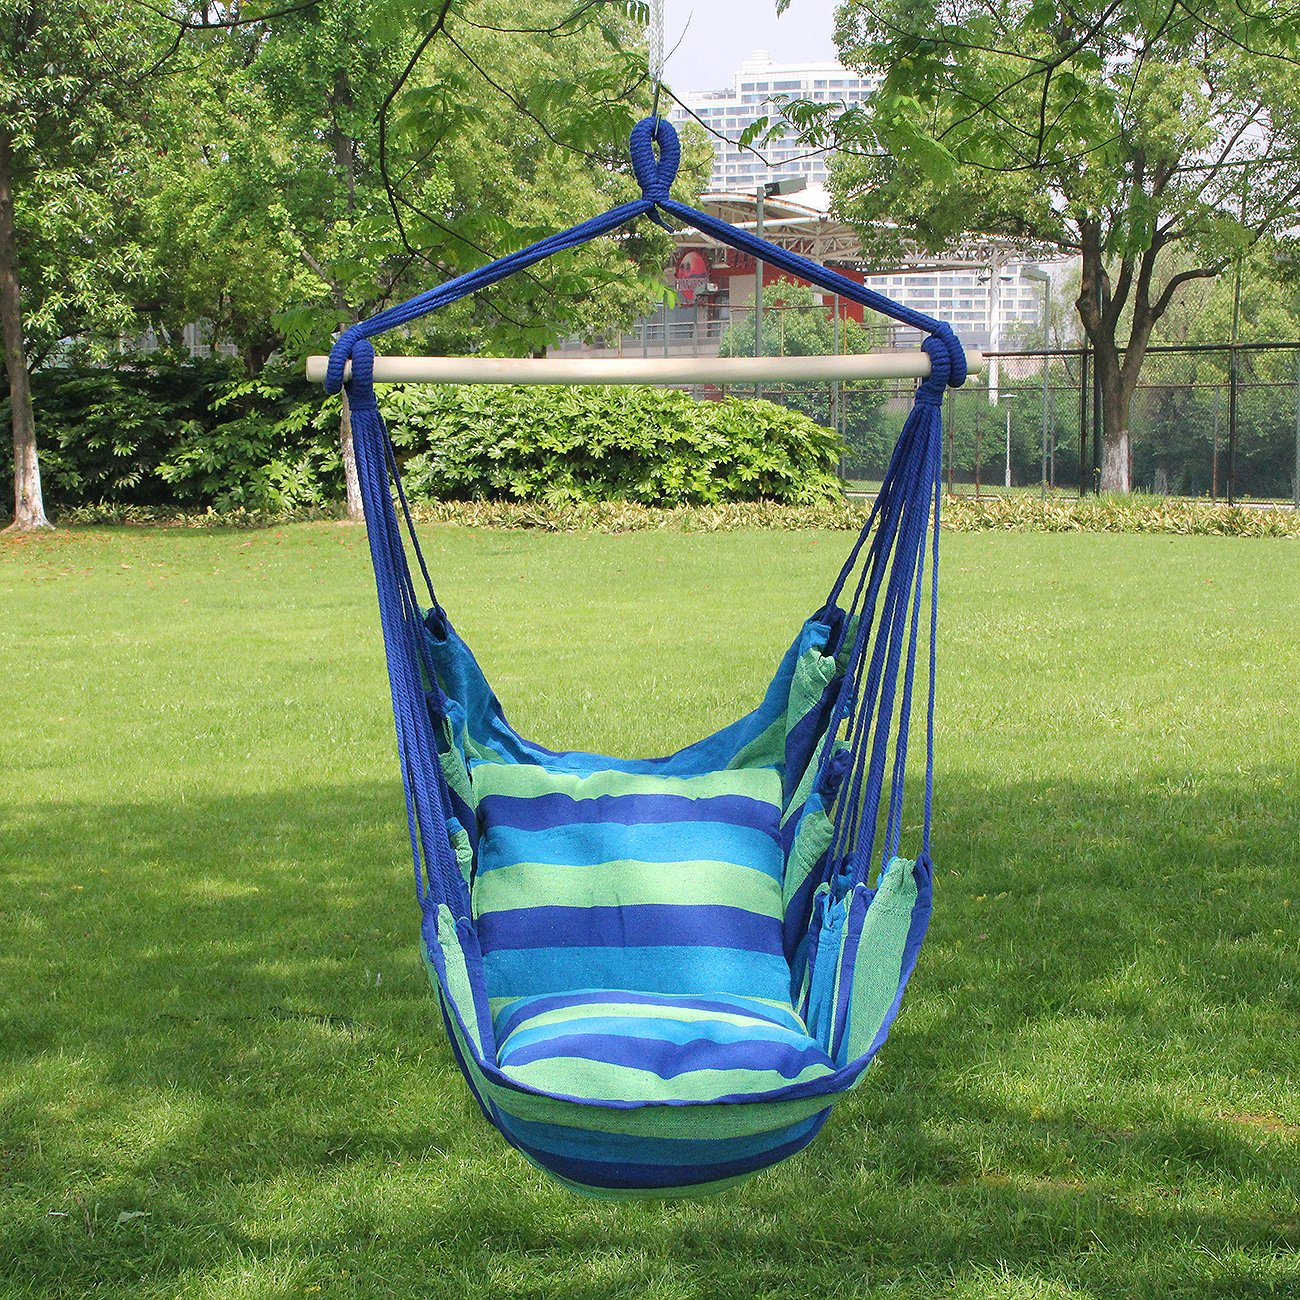 costa c hangstoel hangingchair chair hammocks rica hammock online rainbow xl buy p hangstoelen